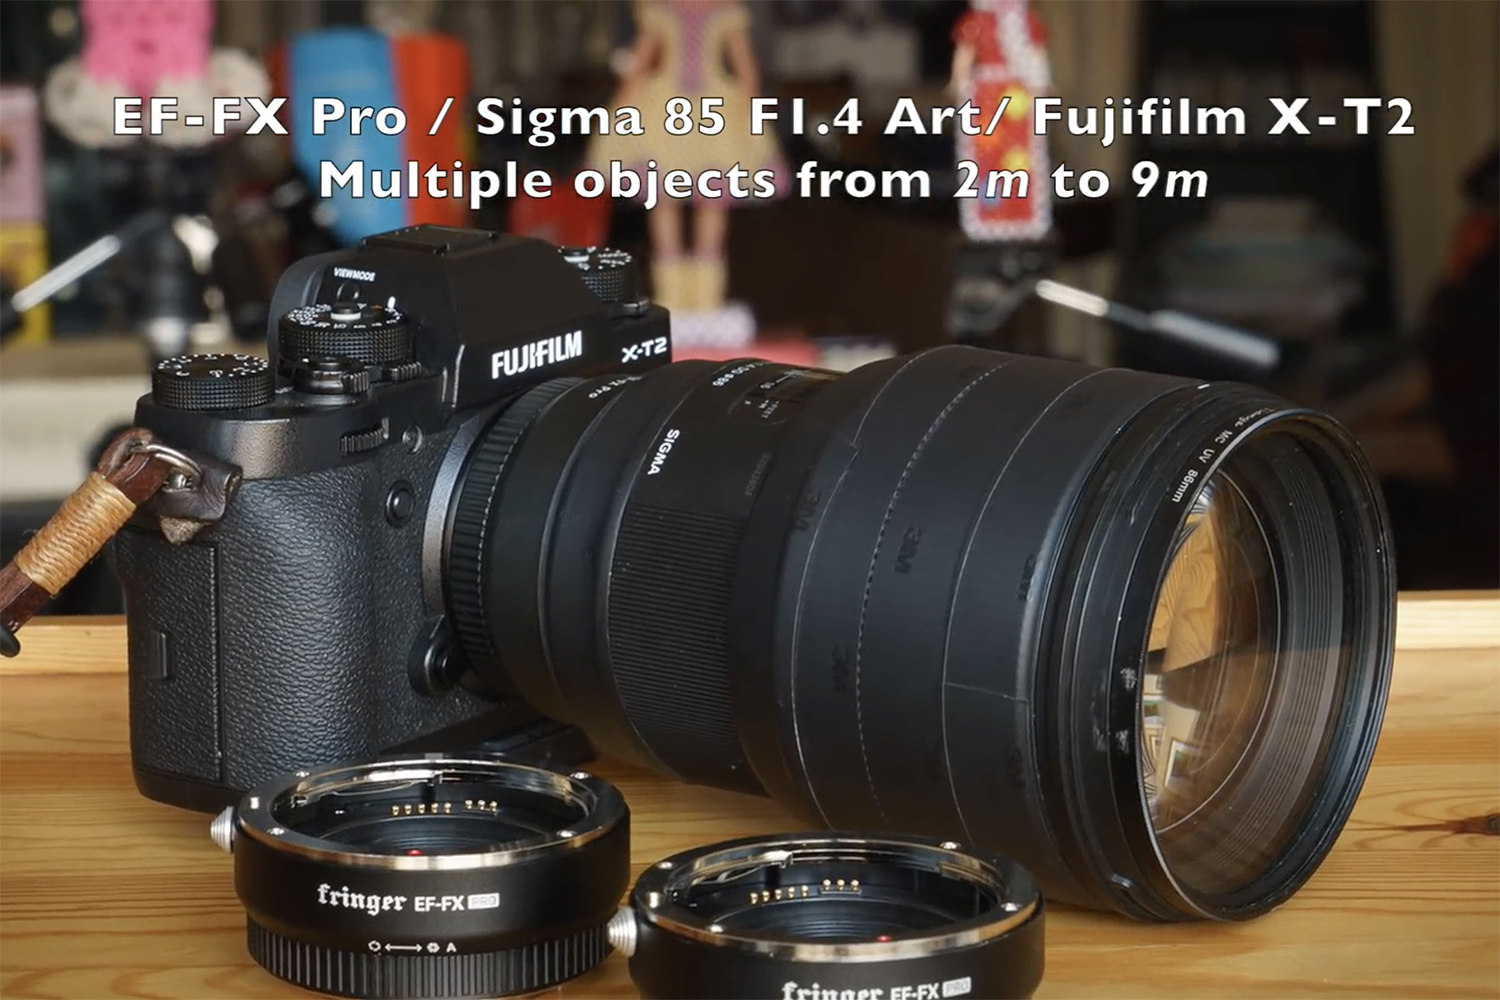 Fringer's Fujifilm X-mount smart adapter – A new universe of possibilities for Fujifilm photographers